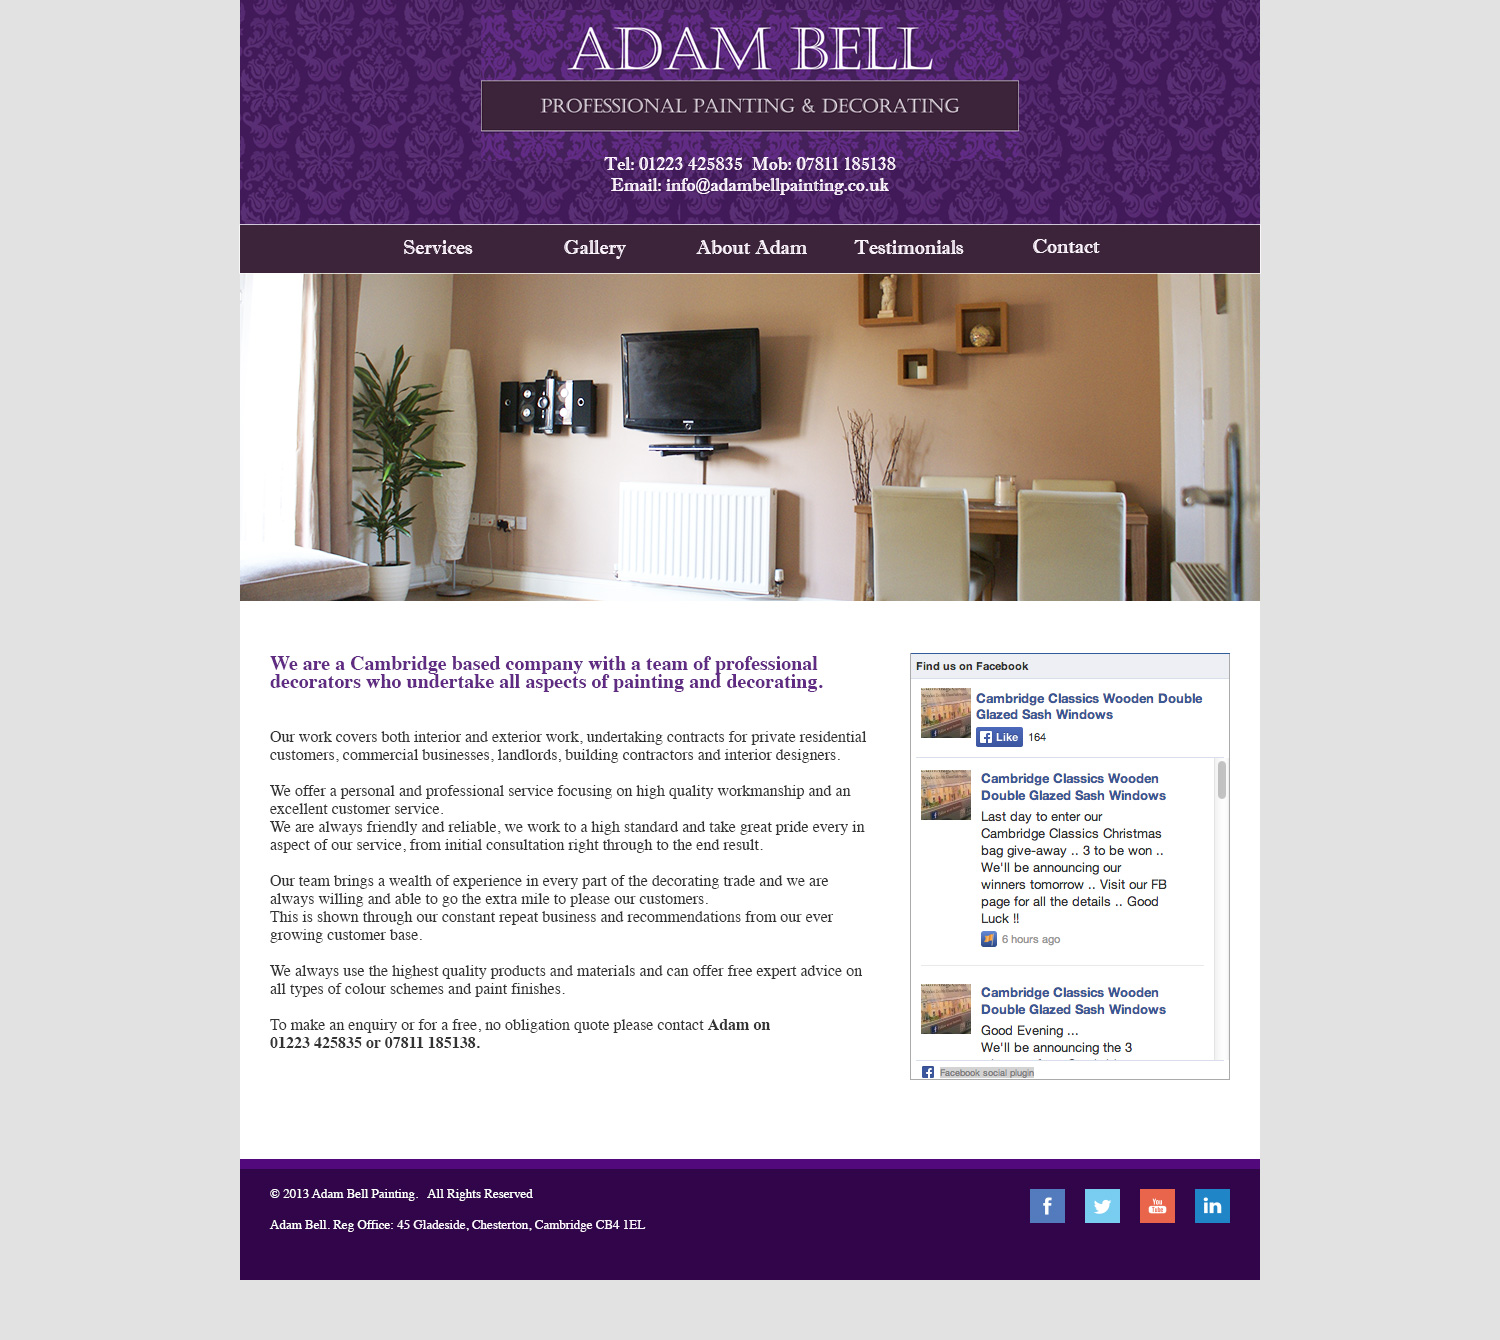 KSD_AdamBell_website